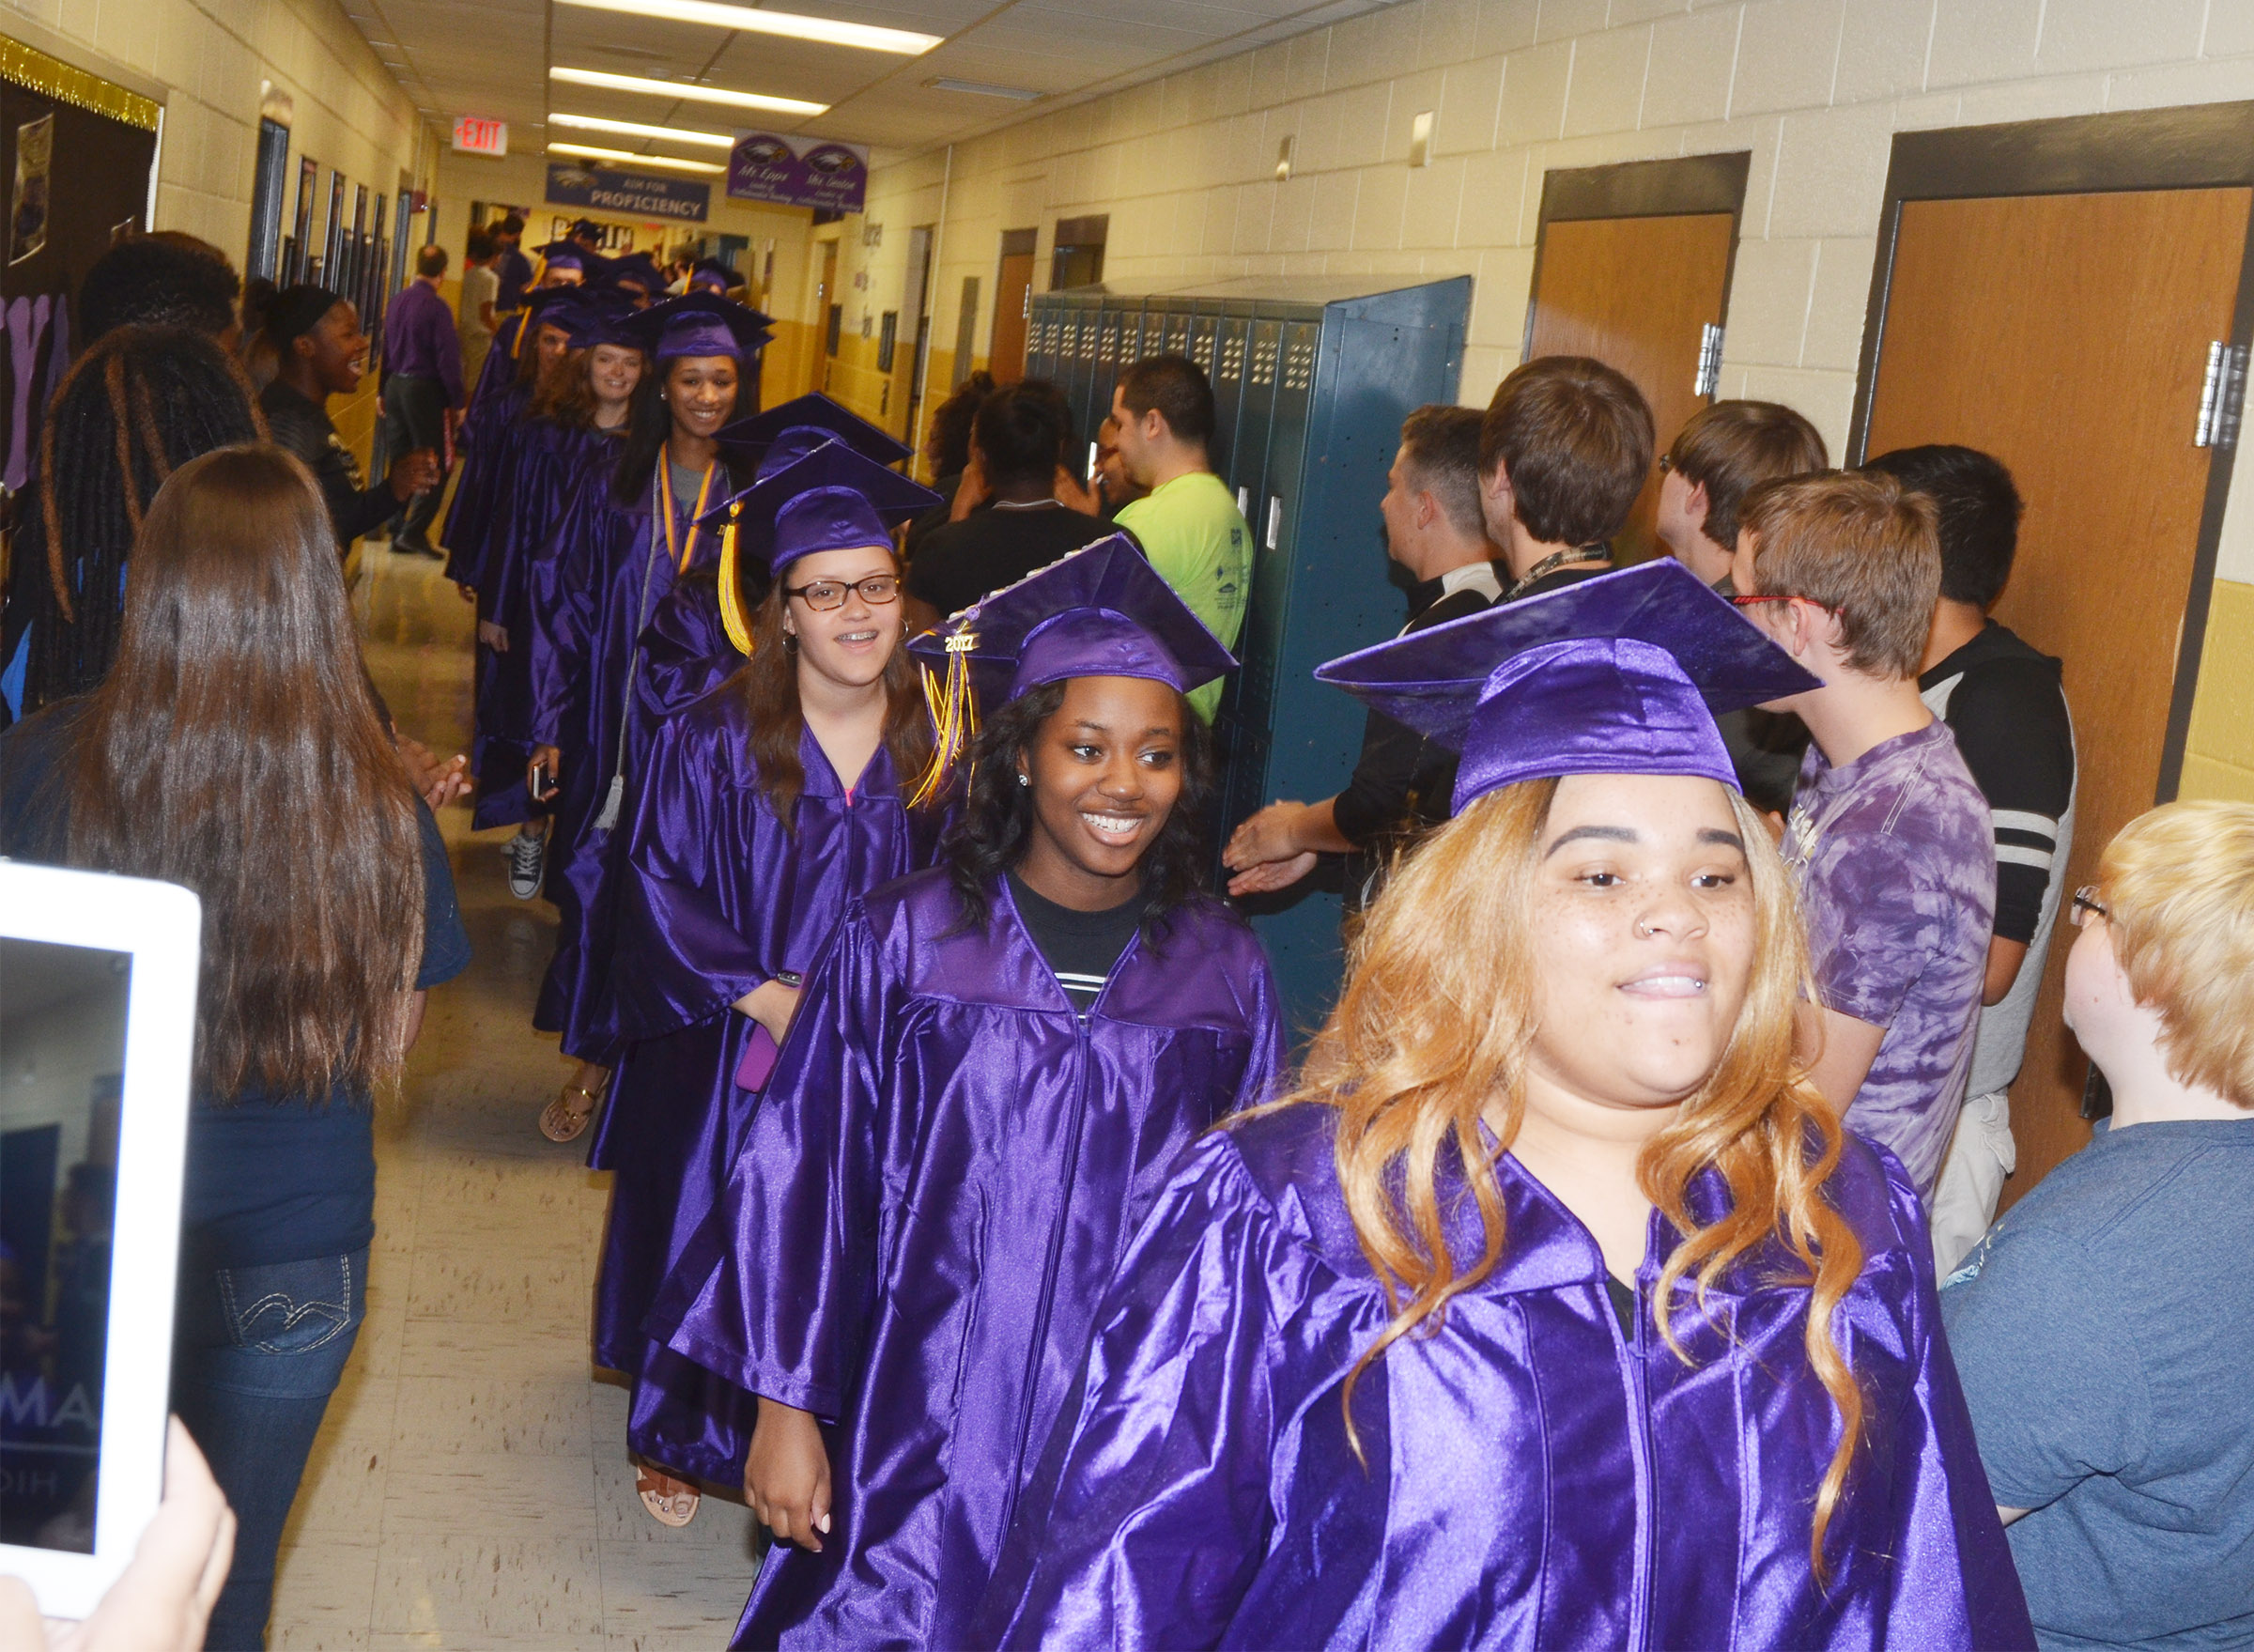 CHS seniors, from left, Breanna Spaulding, Latavia Shively and Deovion Owens walk with their classmates down the hallways at CHS.